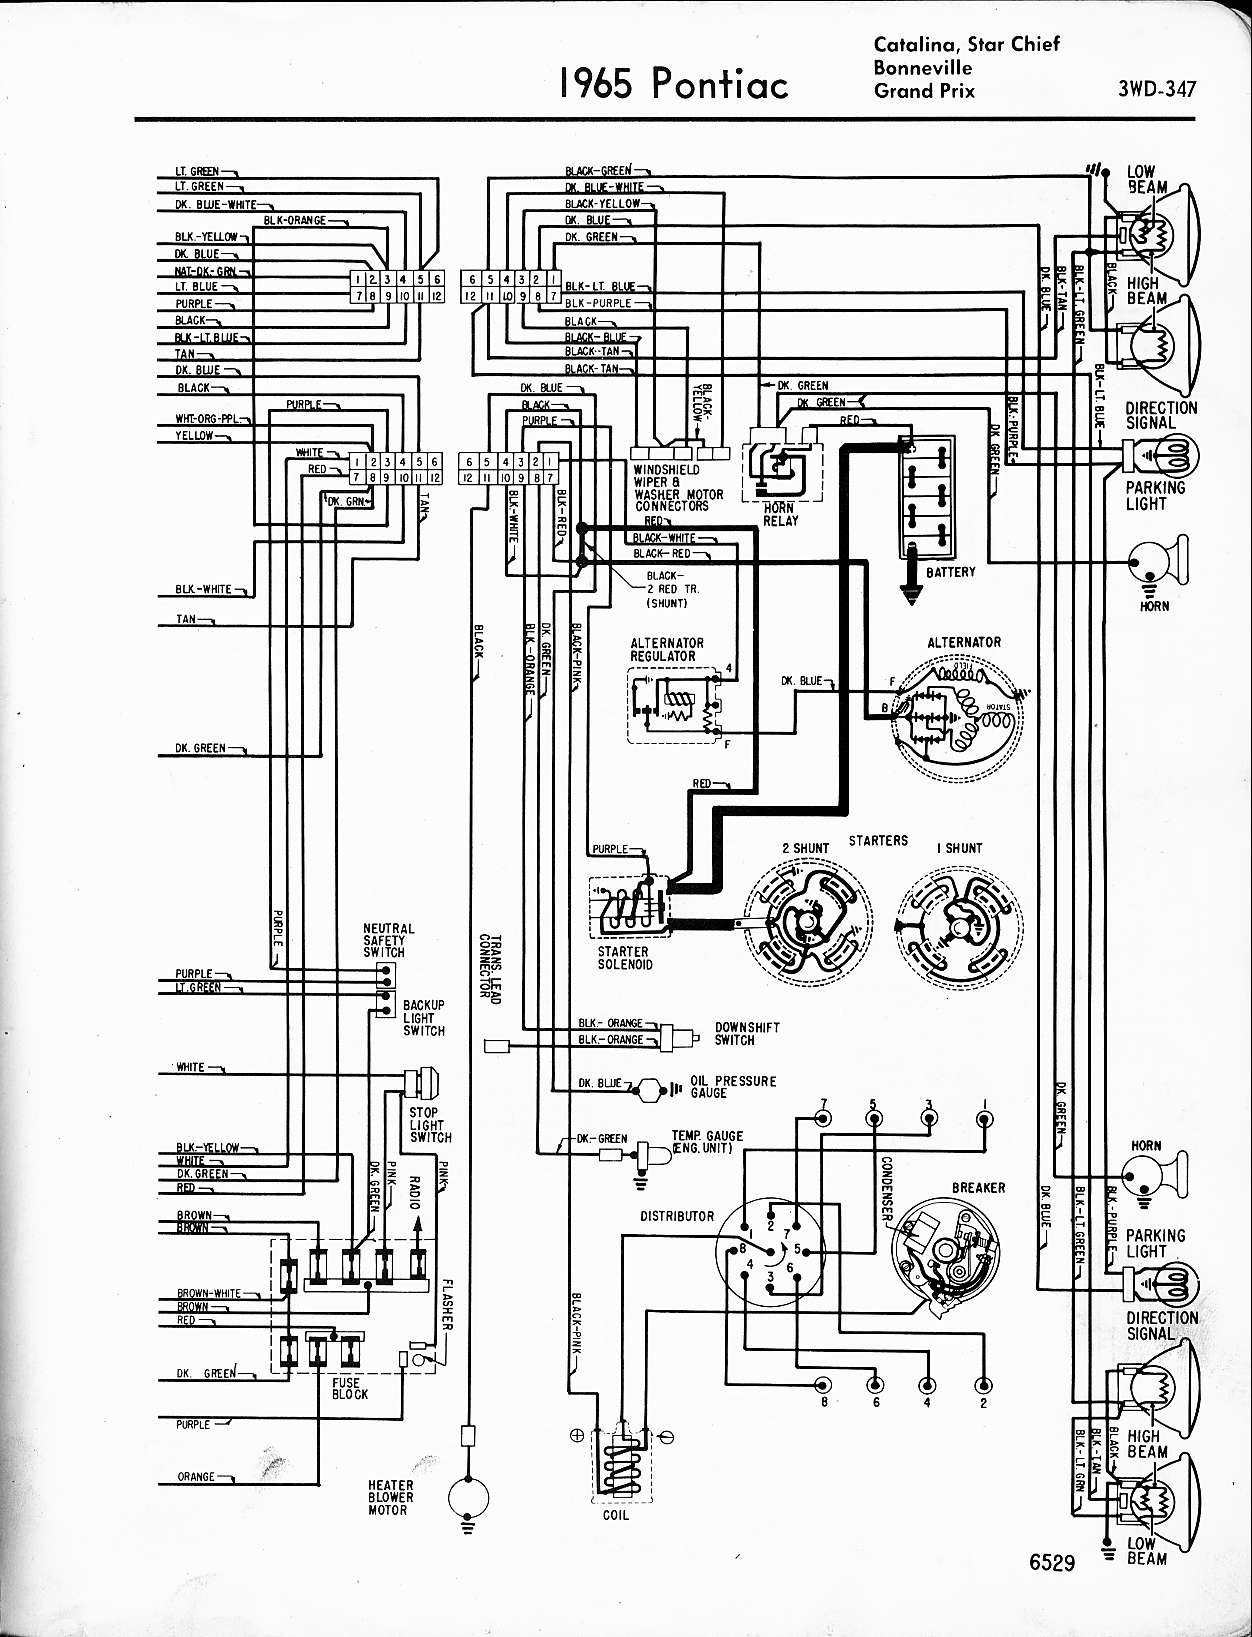 MWire5765 347 pontiac wiring diagrams pontiac grand prix wiring diagrams \u2022 free 2001 pontiac bonneville fuse box at creativeand.co